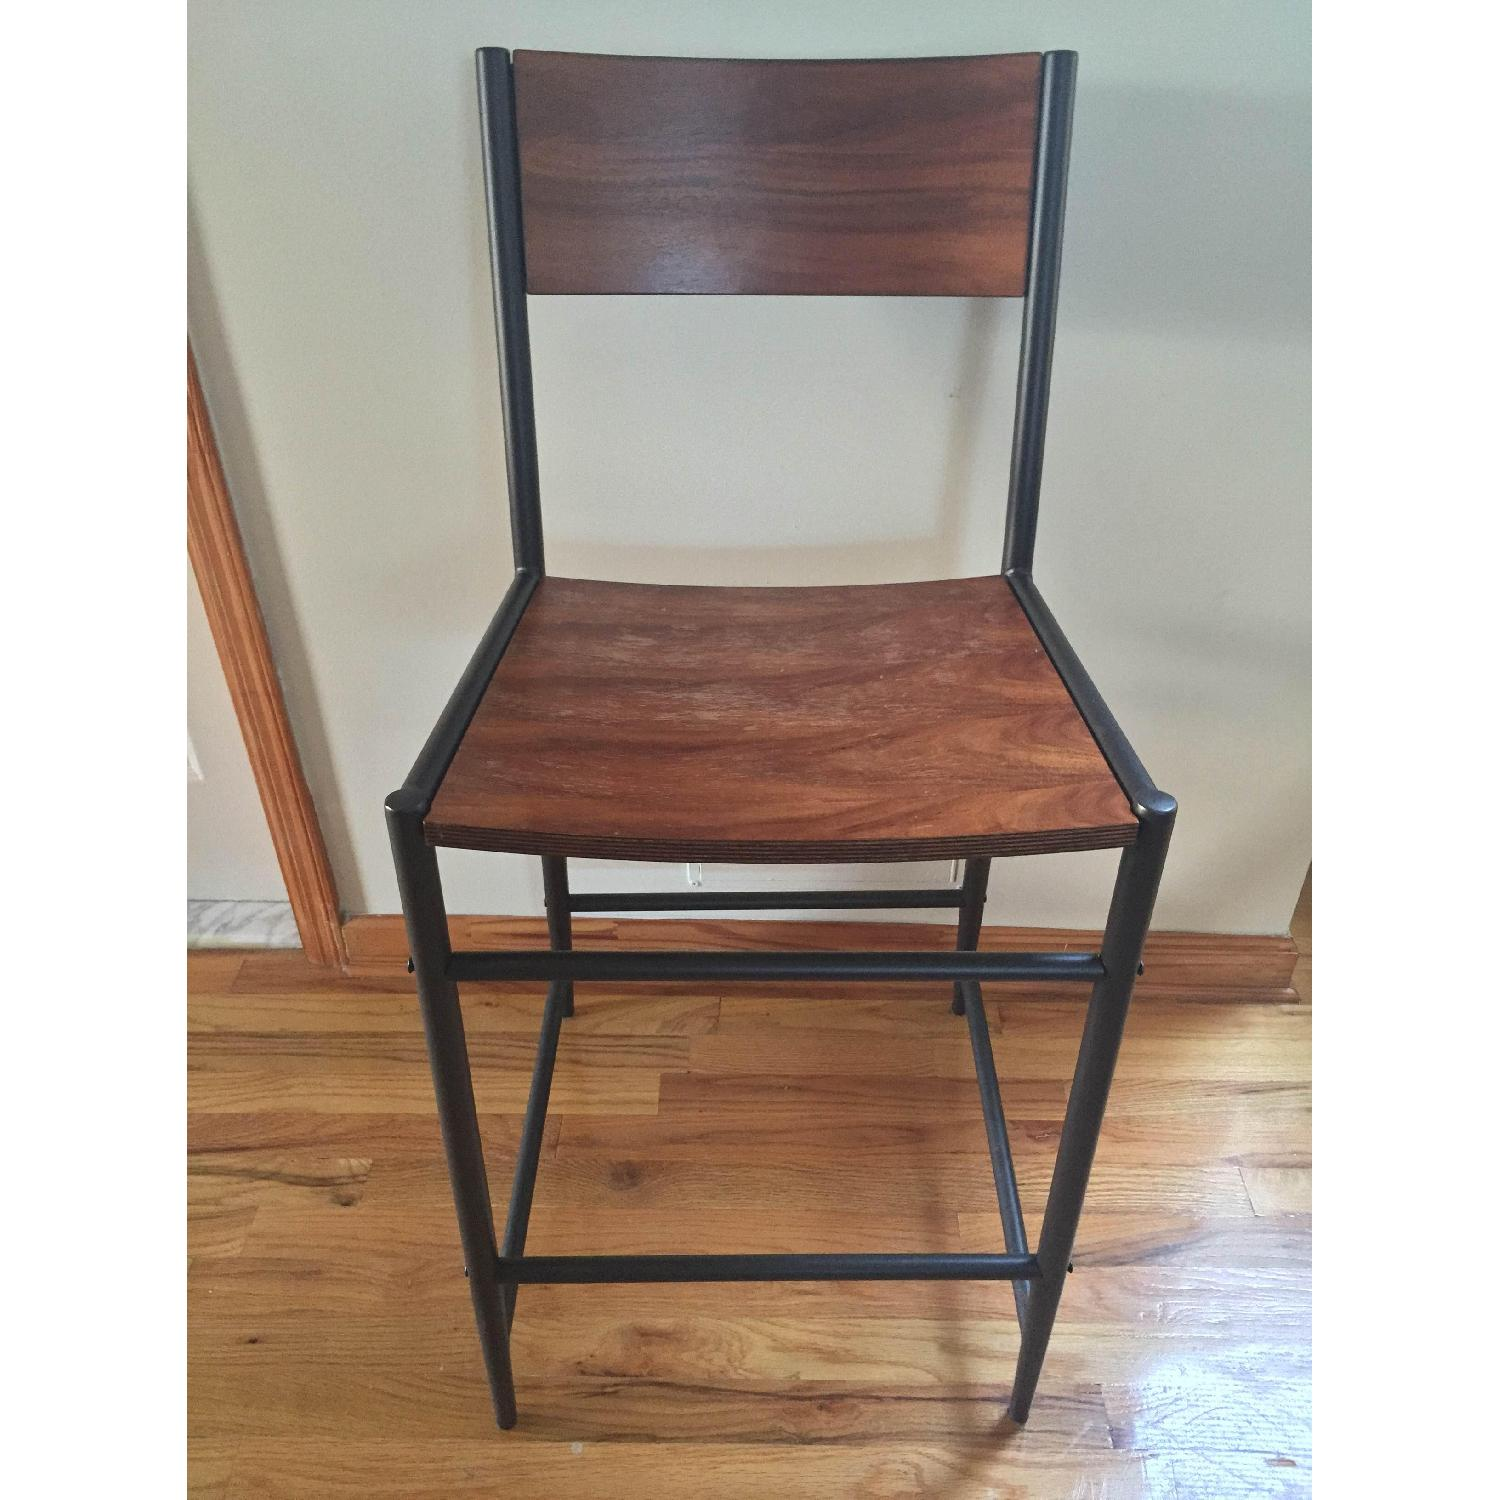 West Elm Table w/ 2 Chairs - image-7